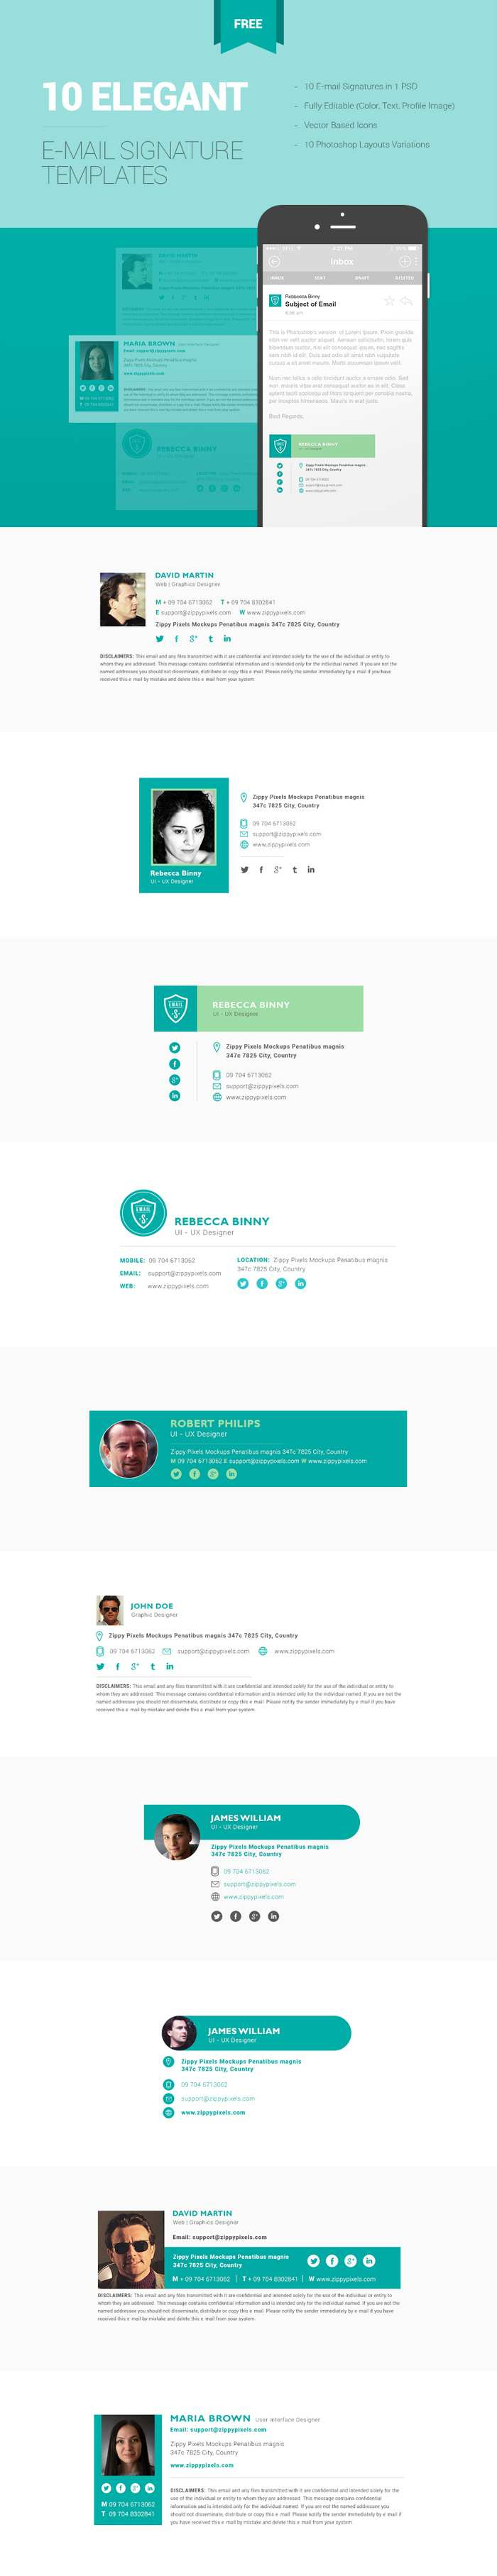 10 Free Email Signature Templates Free Email Signature Email Signatures Email Signature Templates